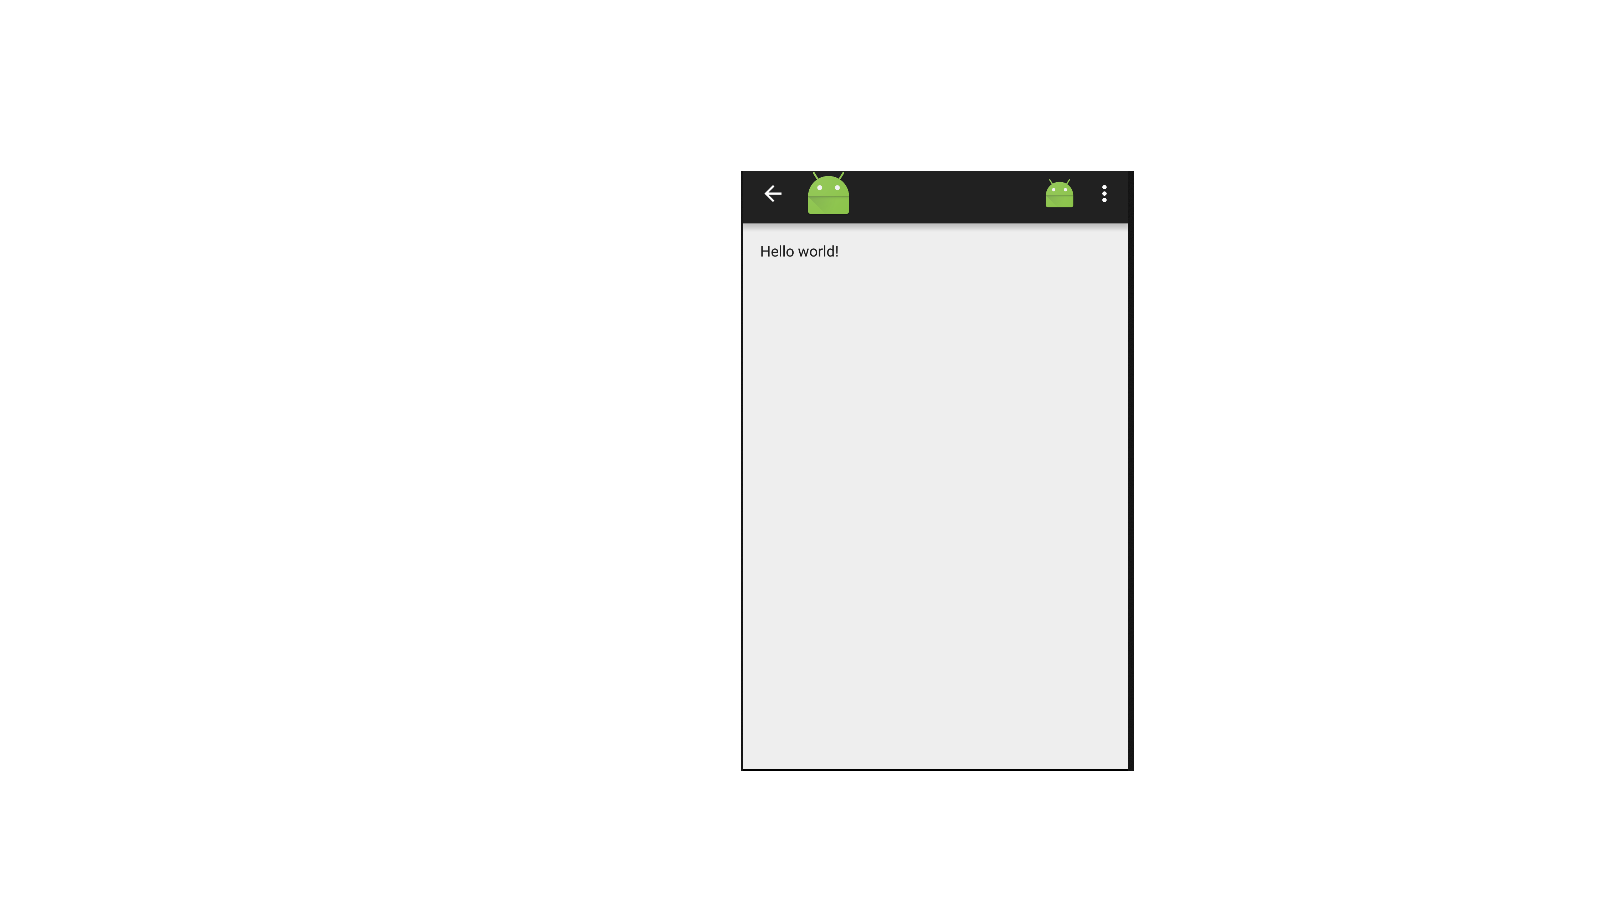 Action bar png. Icon for up in